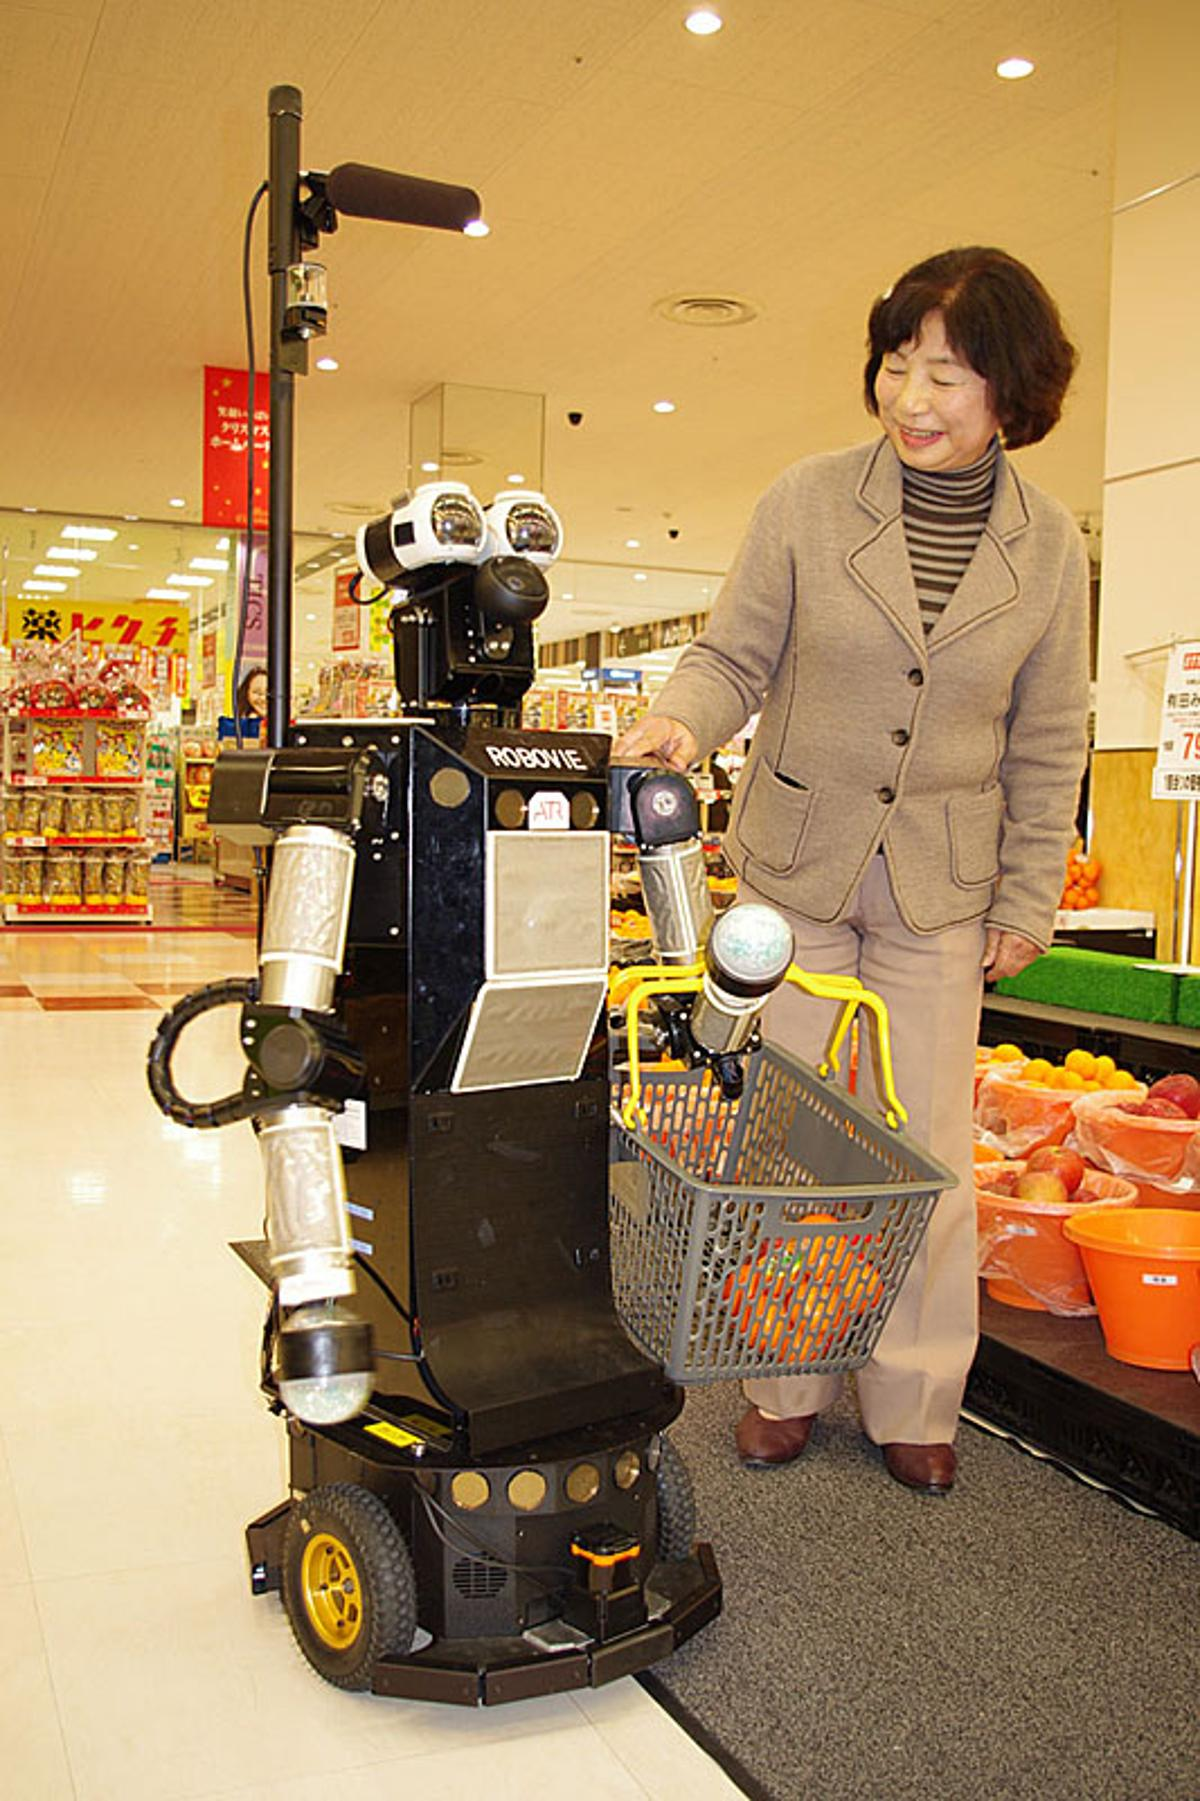 Robovie II aims to assist elderly shoppers by helping them gather their groceries from a pre-loaded shopping list